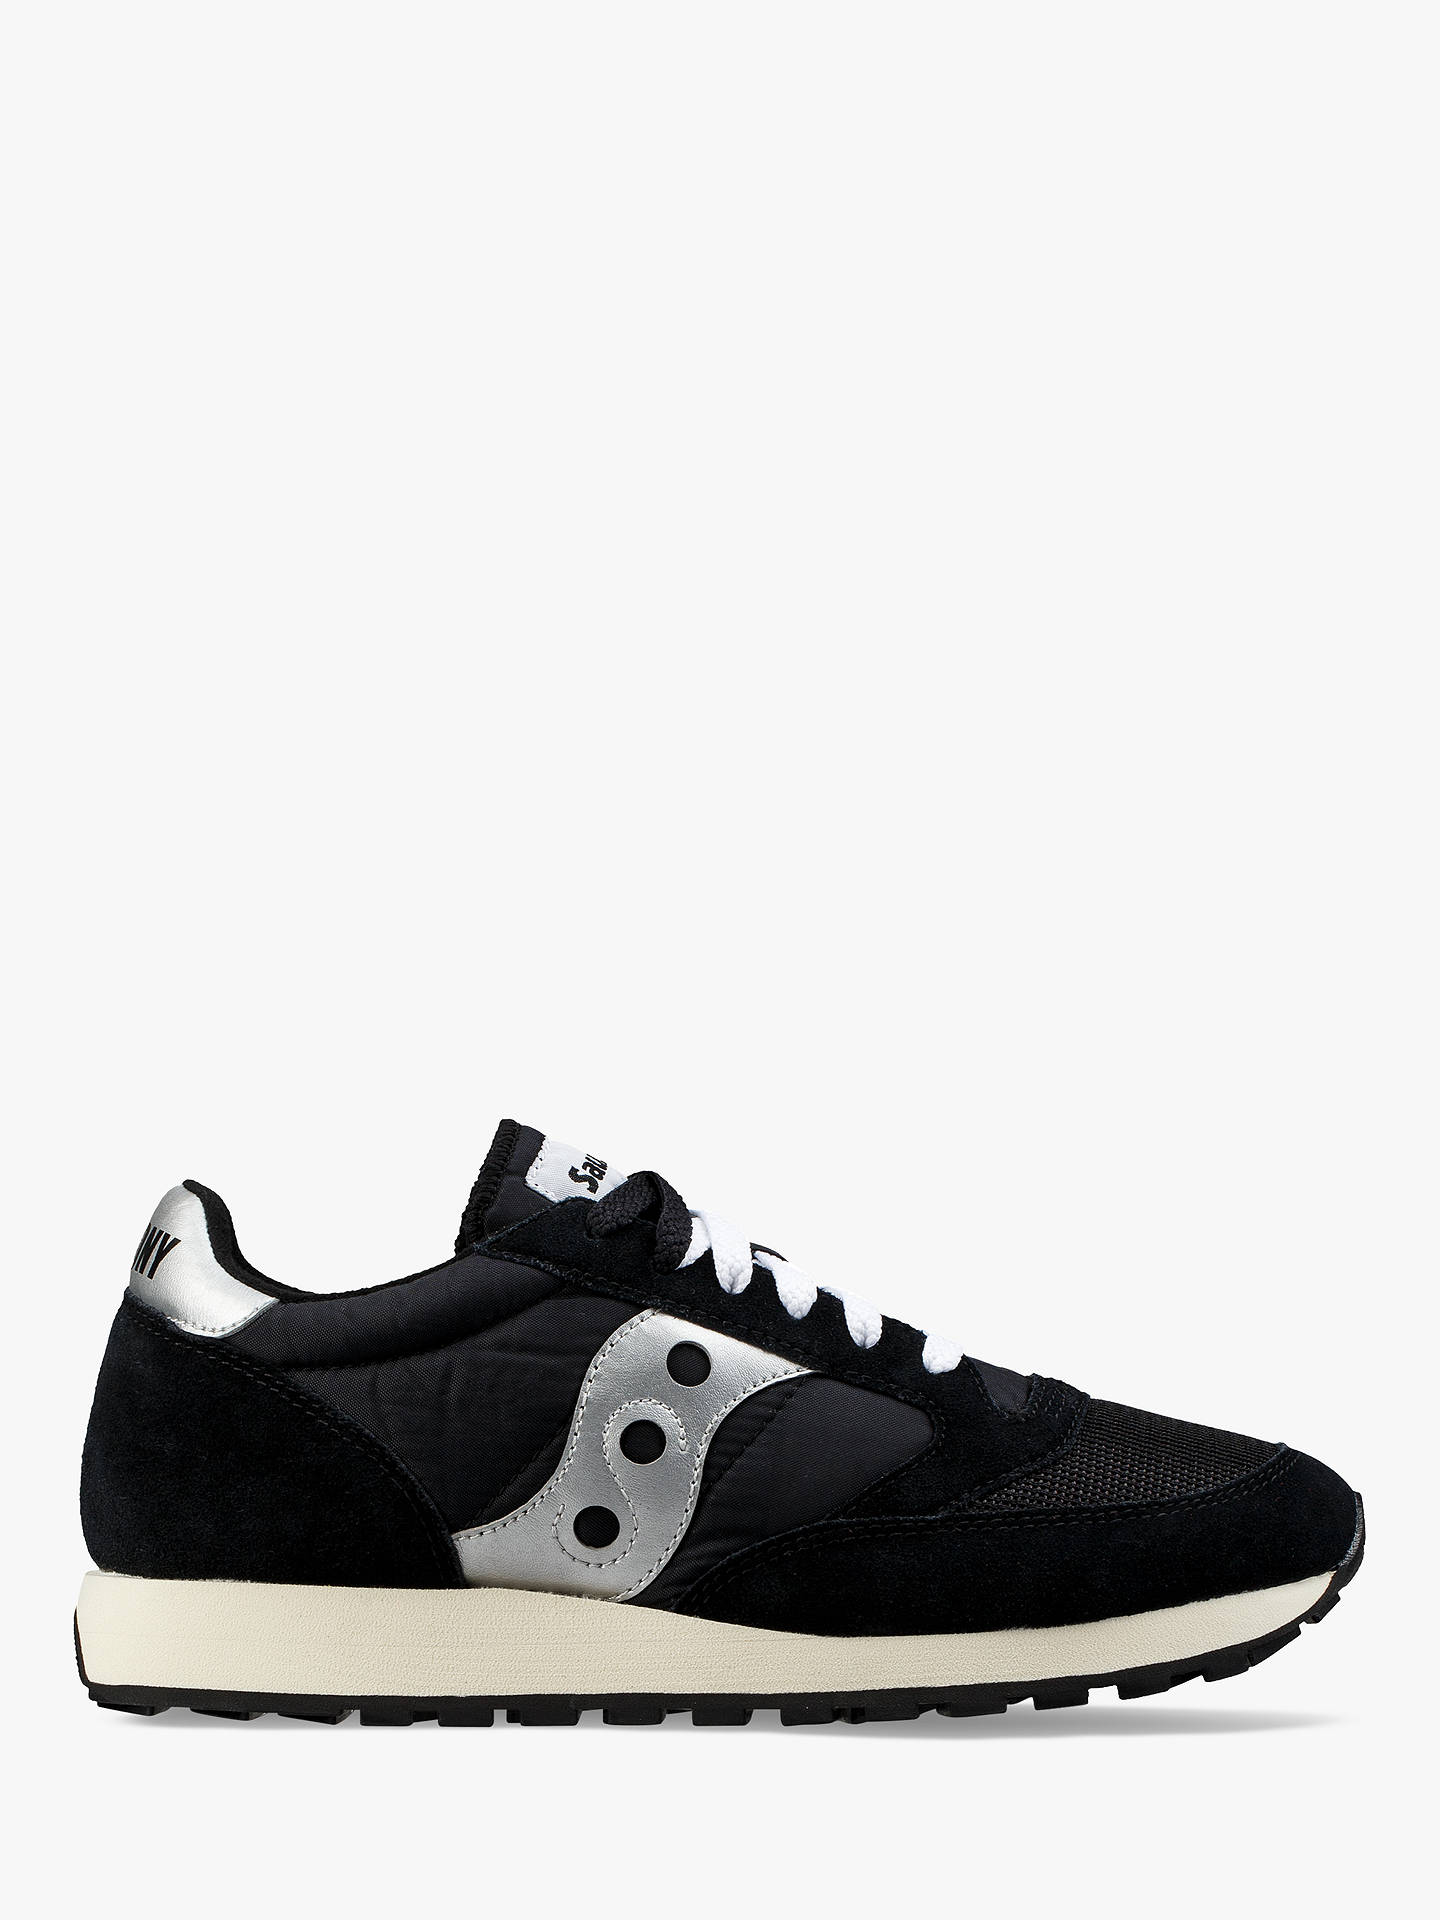 the best attitude 655aa 0757e Saucony Jazz Original Vintage Women's Trainers, Black/White